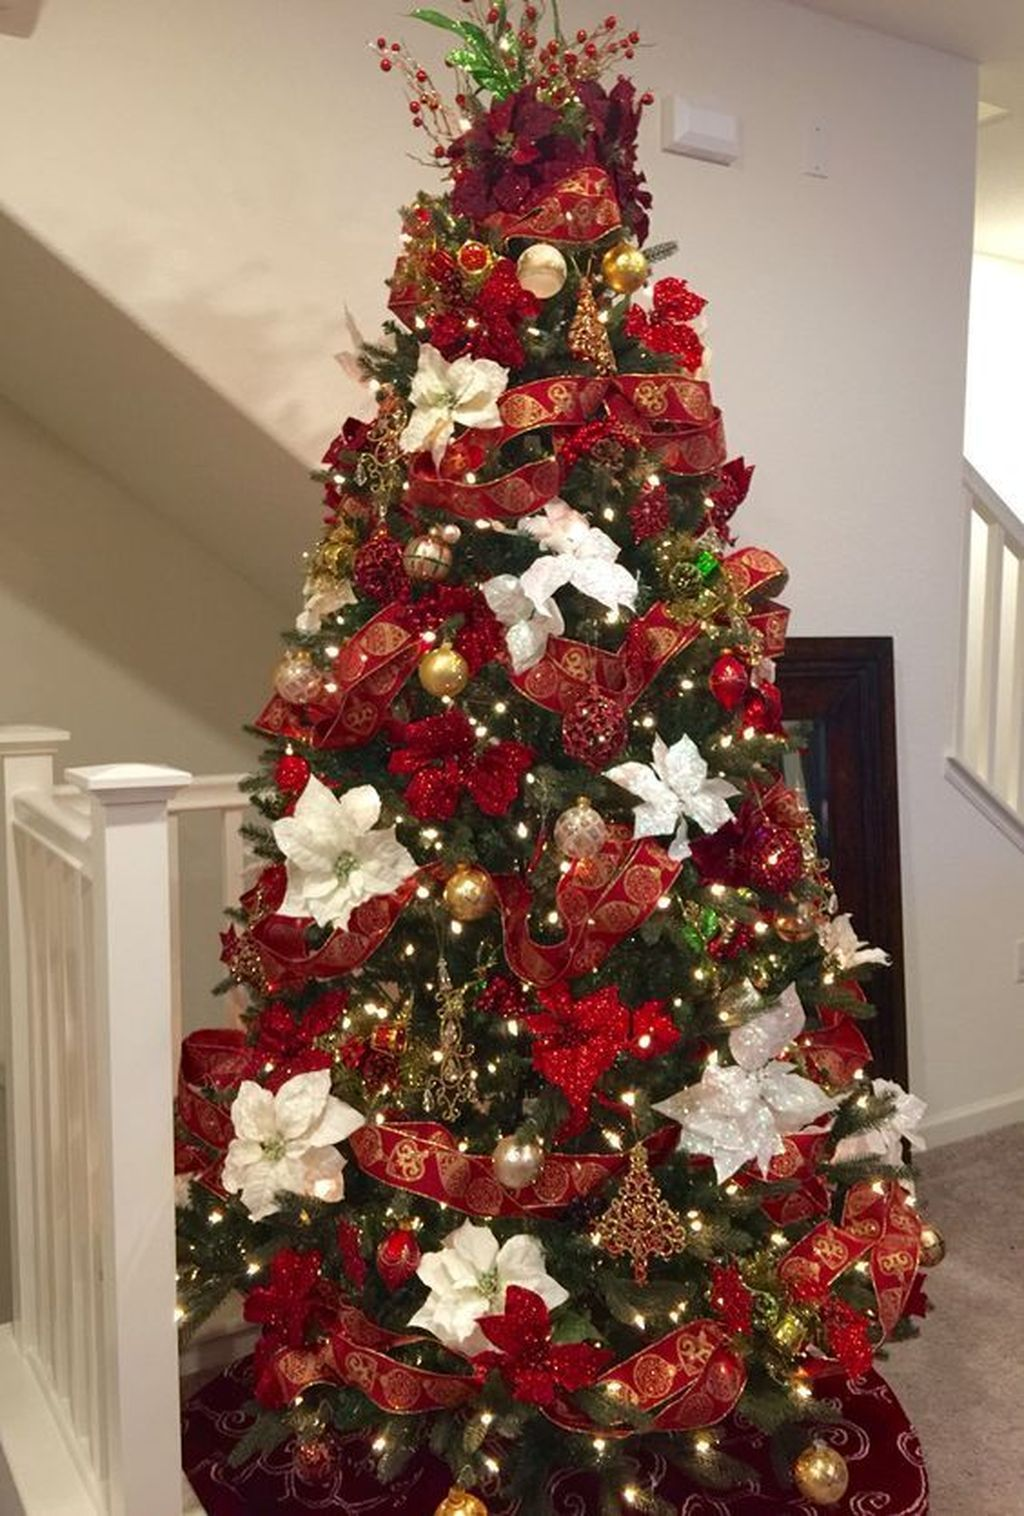 35 Incredible Home Decor Ideas With Christmas Tree Themes ...